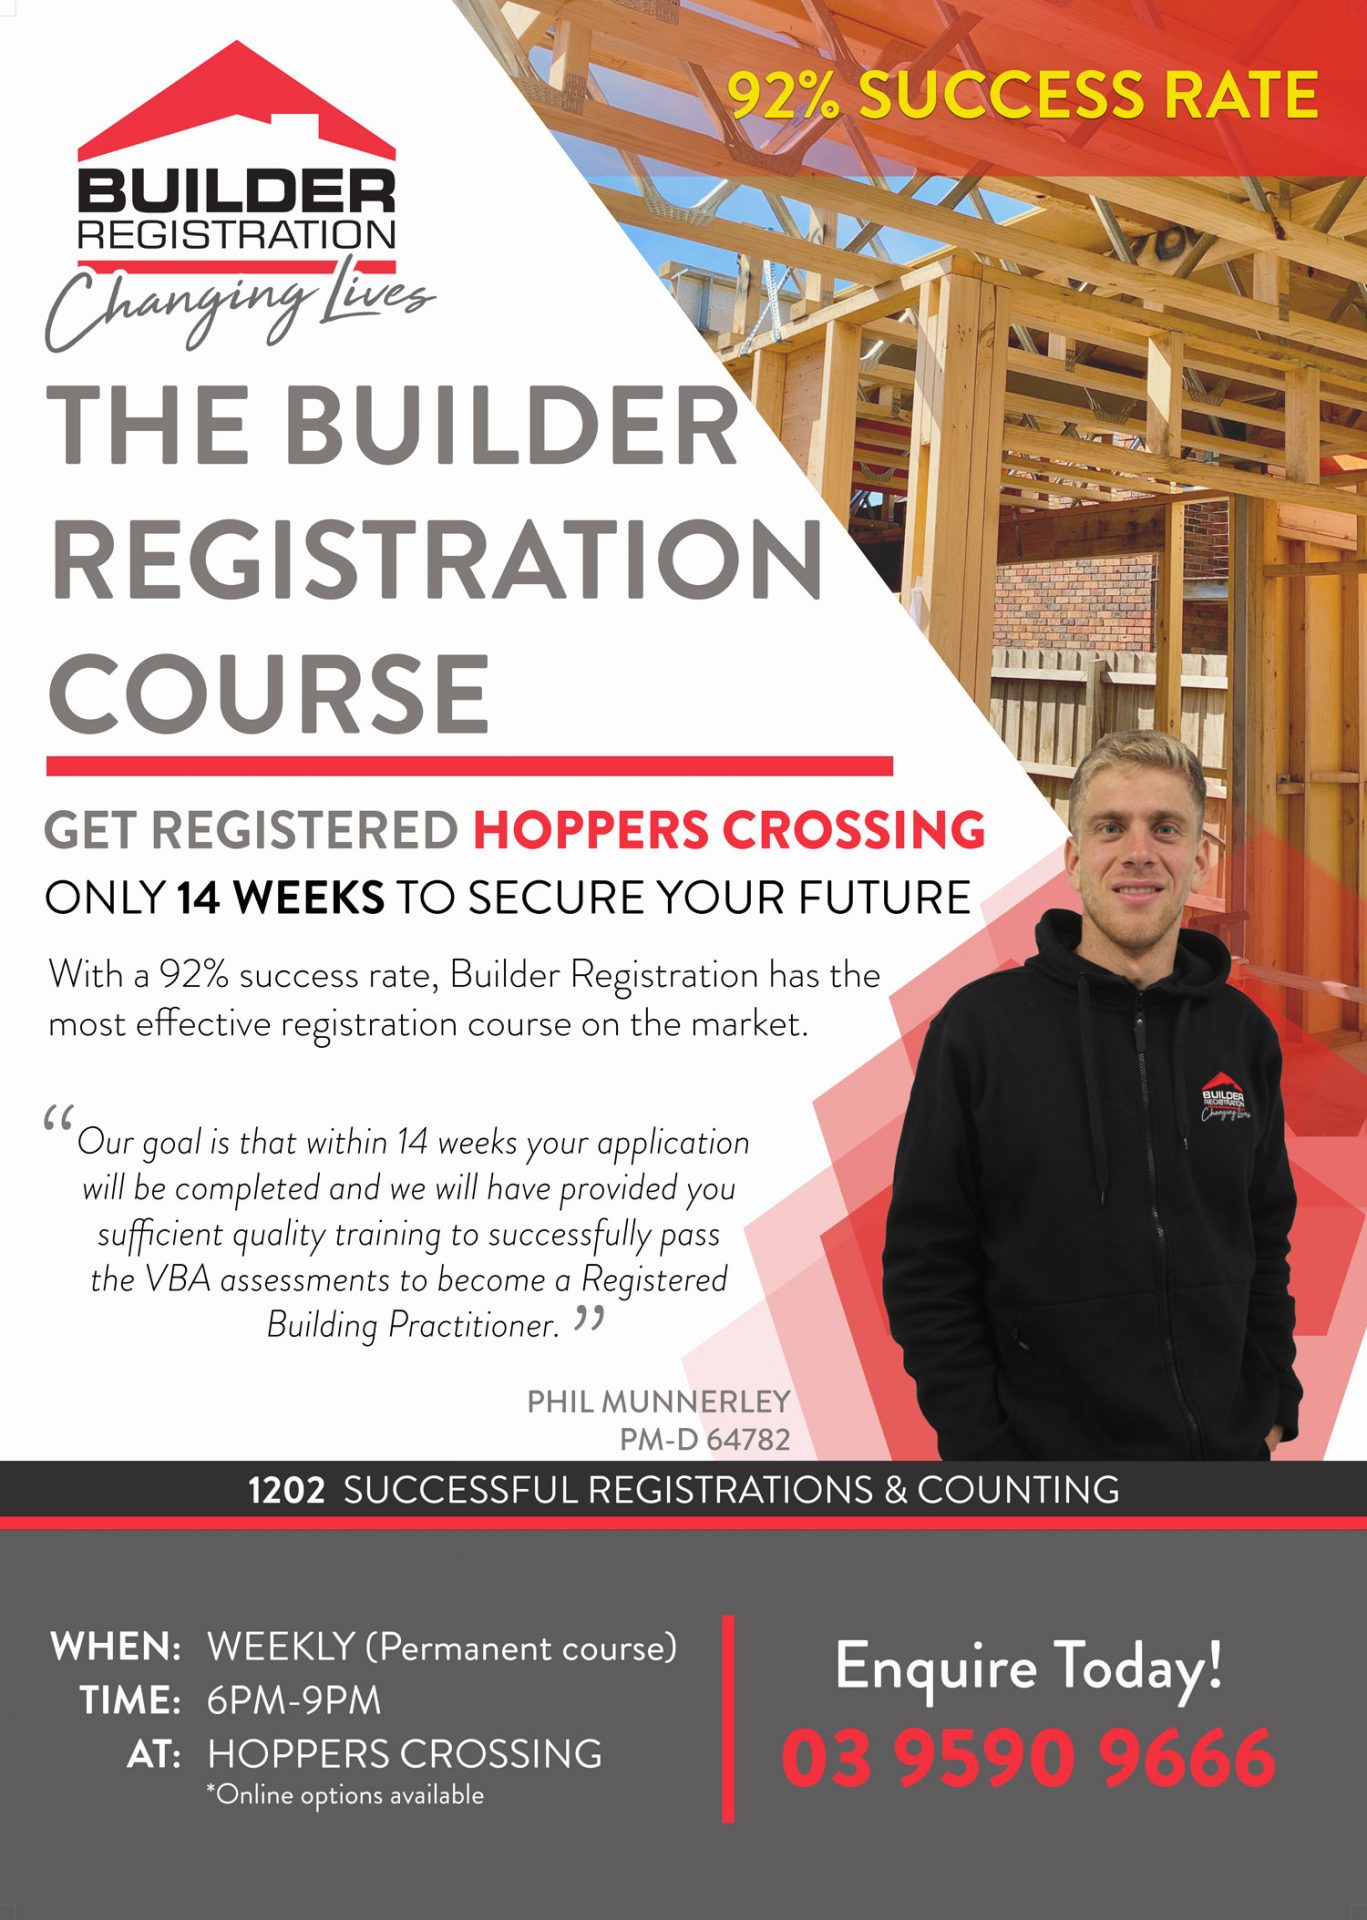 Hoppers-Crossing-Permanent-Course-Flyer